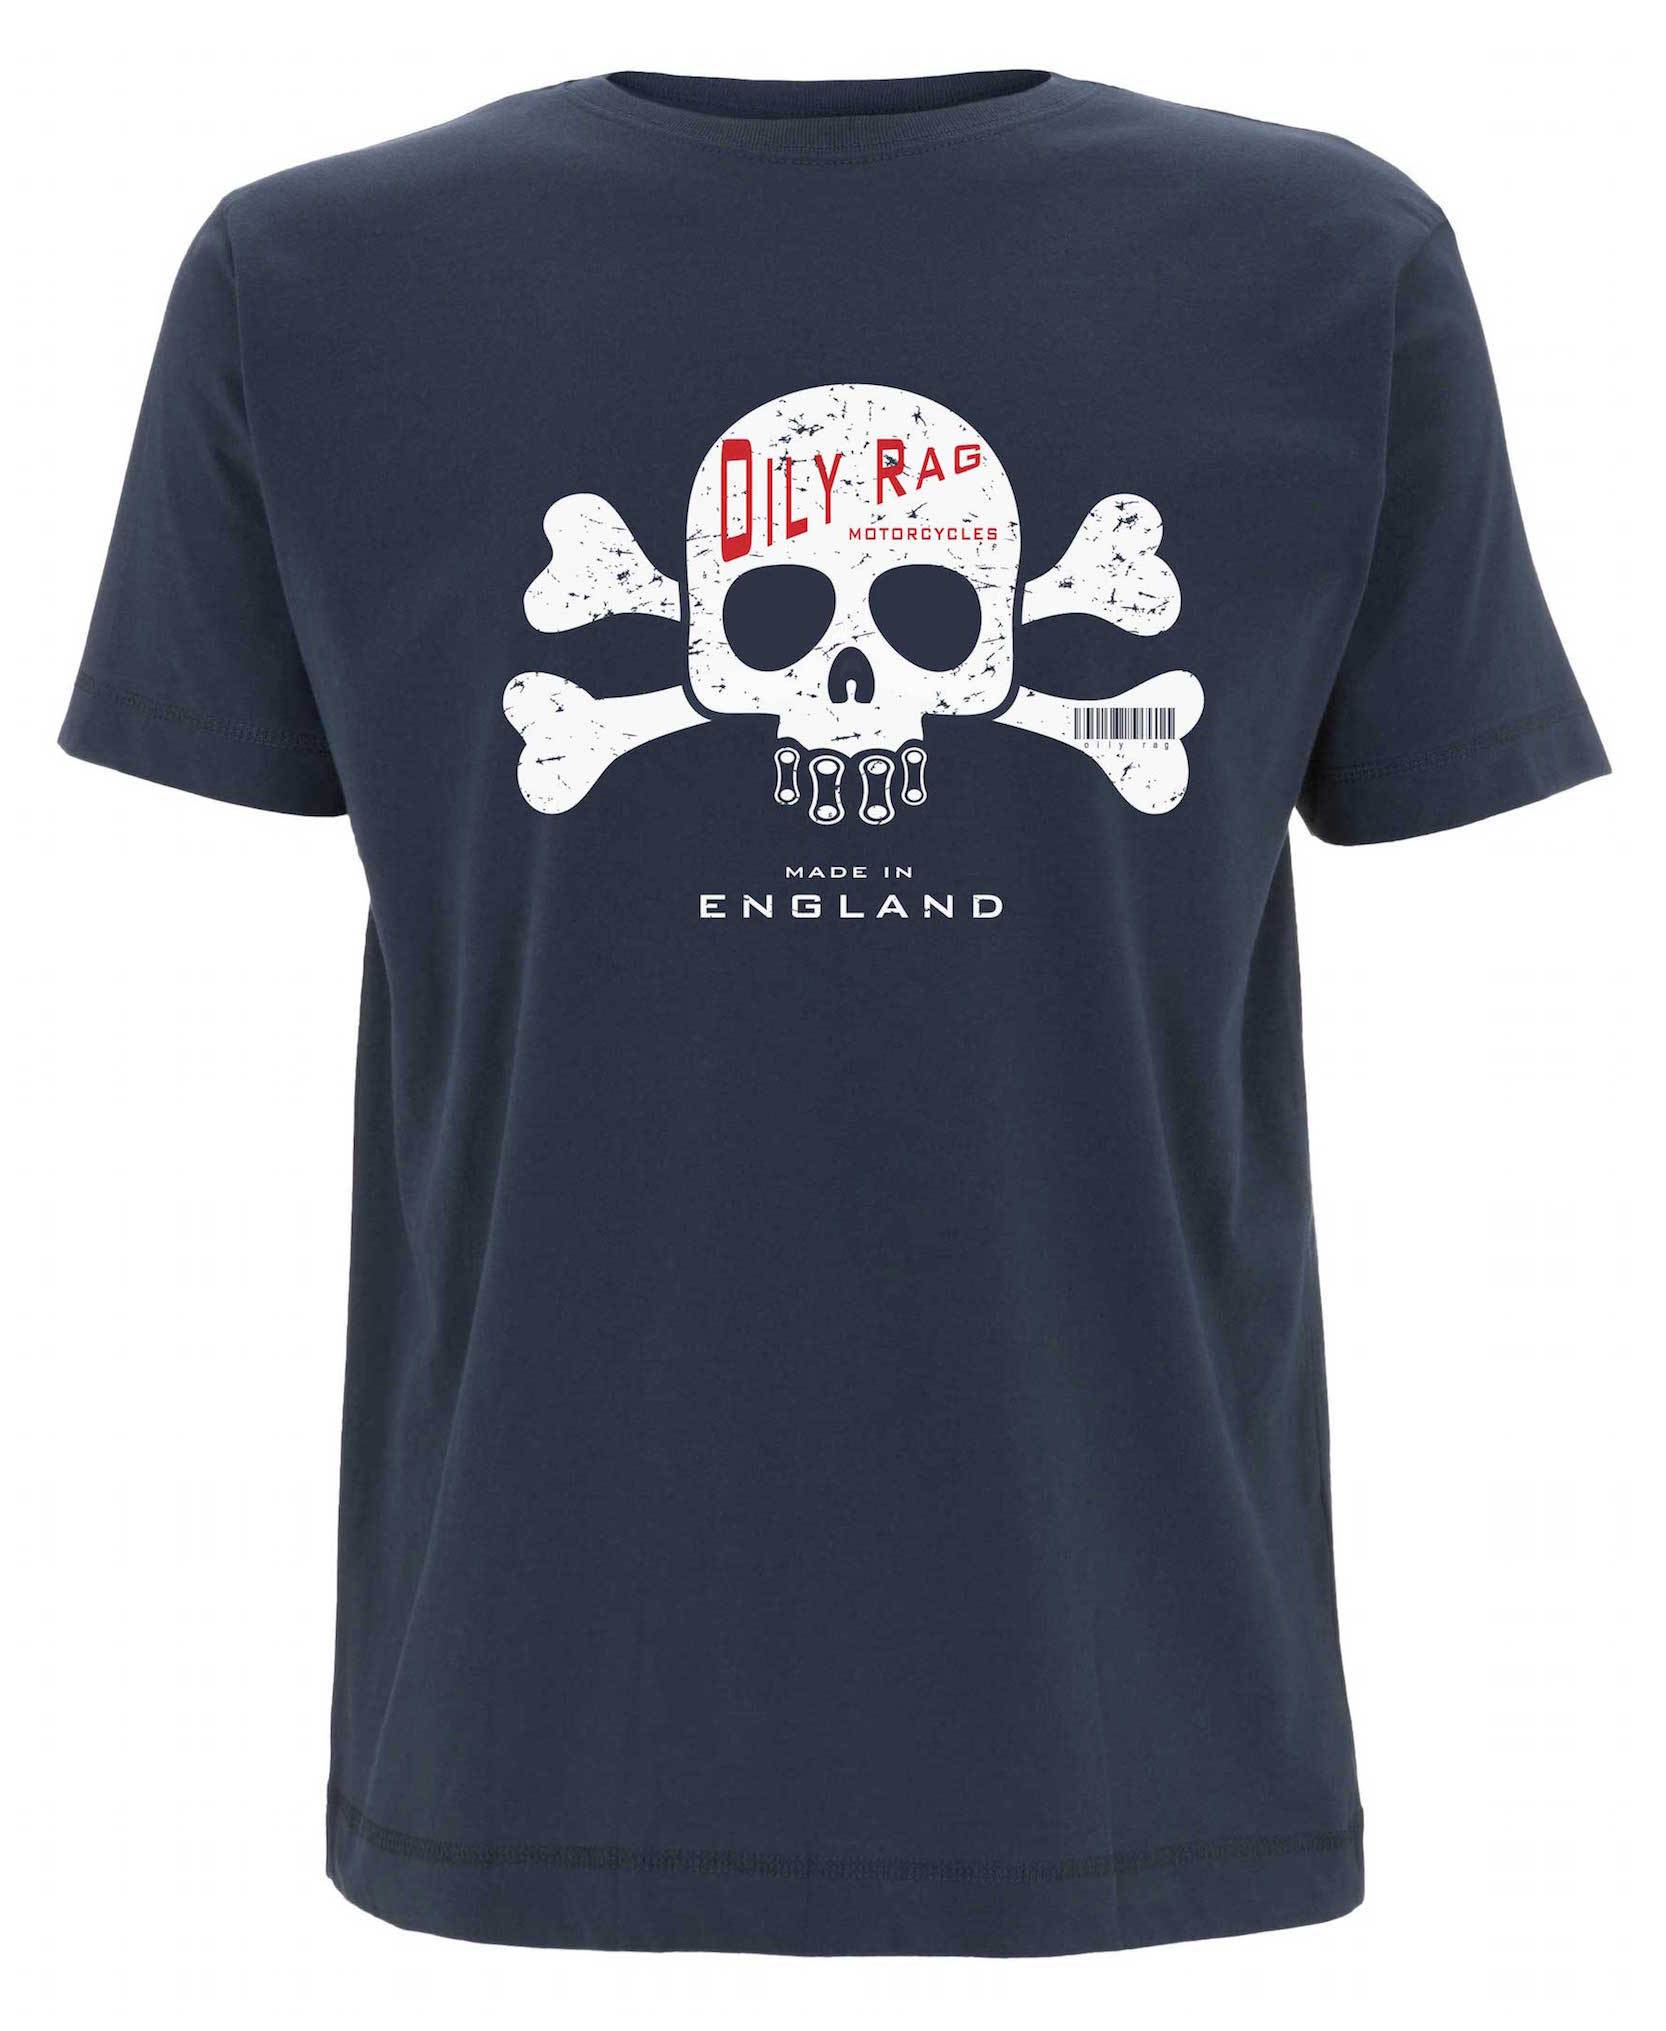 Oily Rag Clothing - Oily Rag Clothing Cross Bones T'Shirt - T-Shirts - Salt Flats Clothing